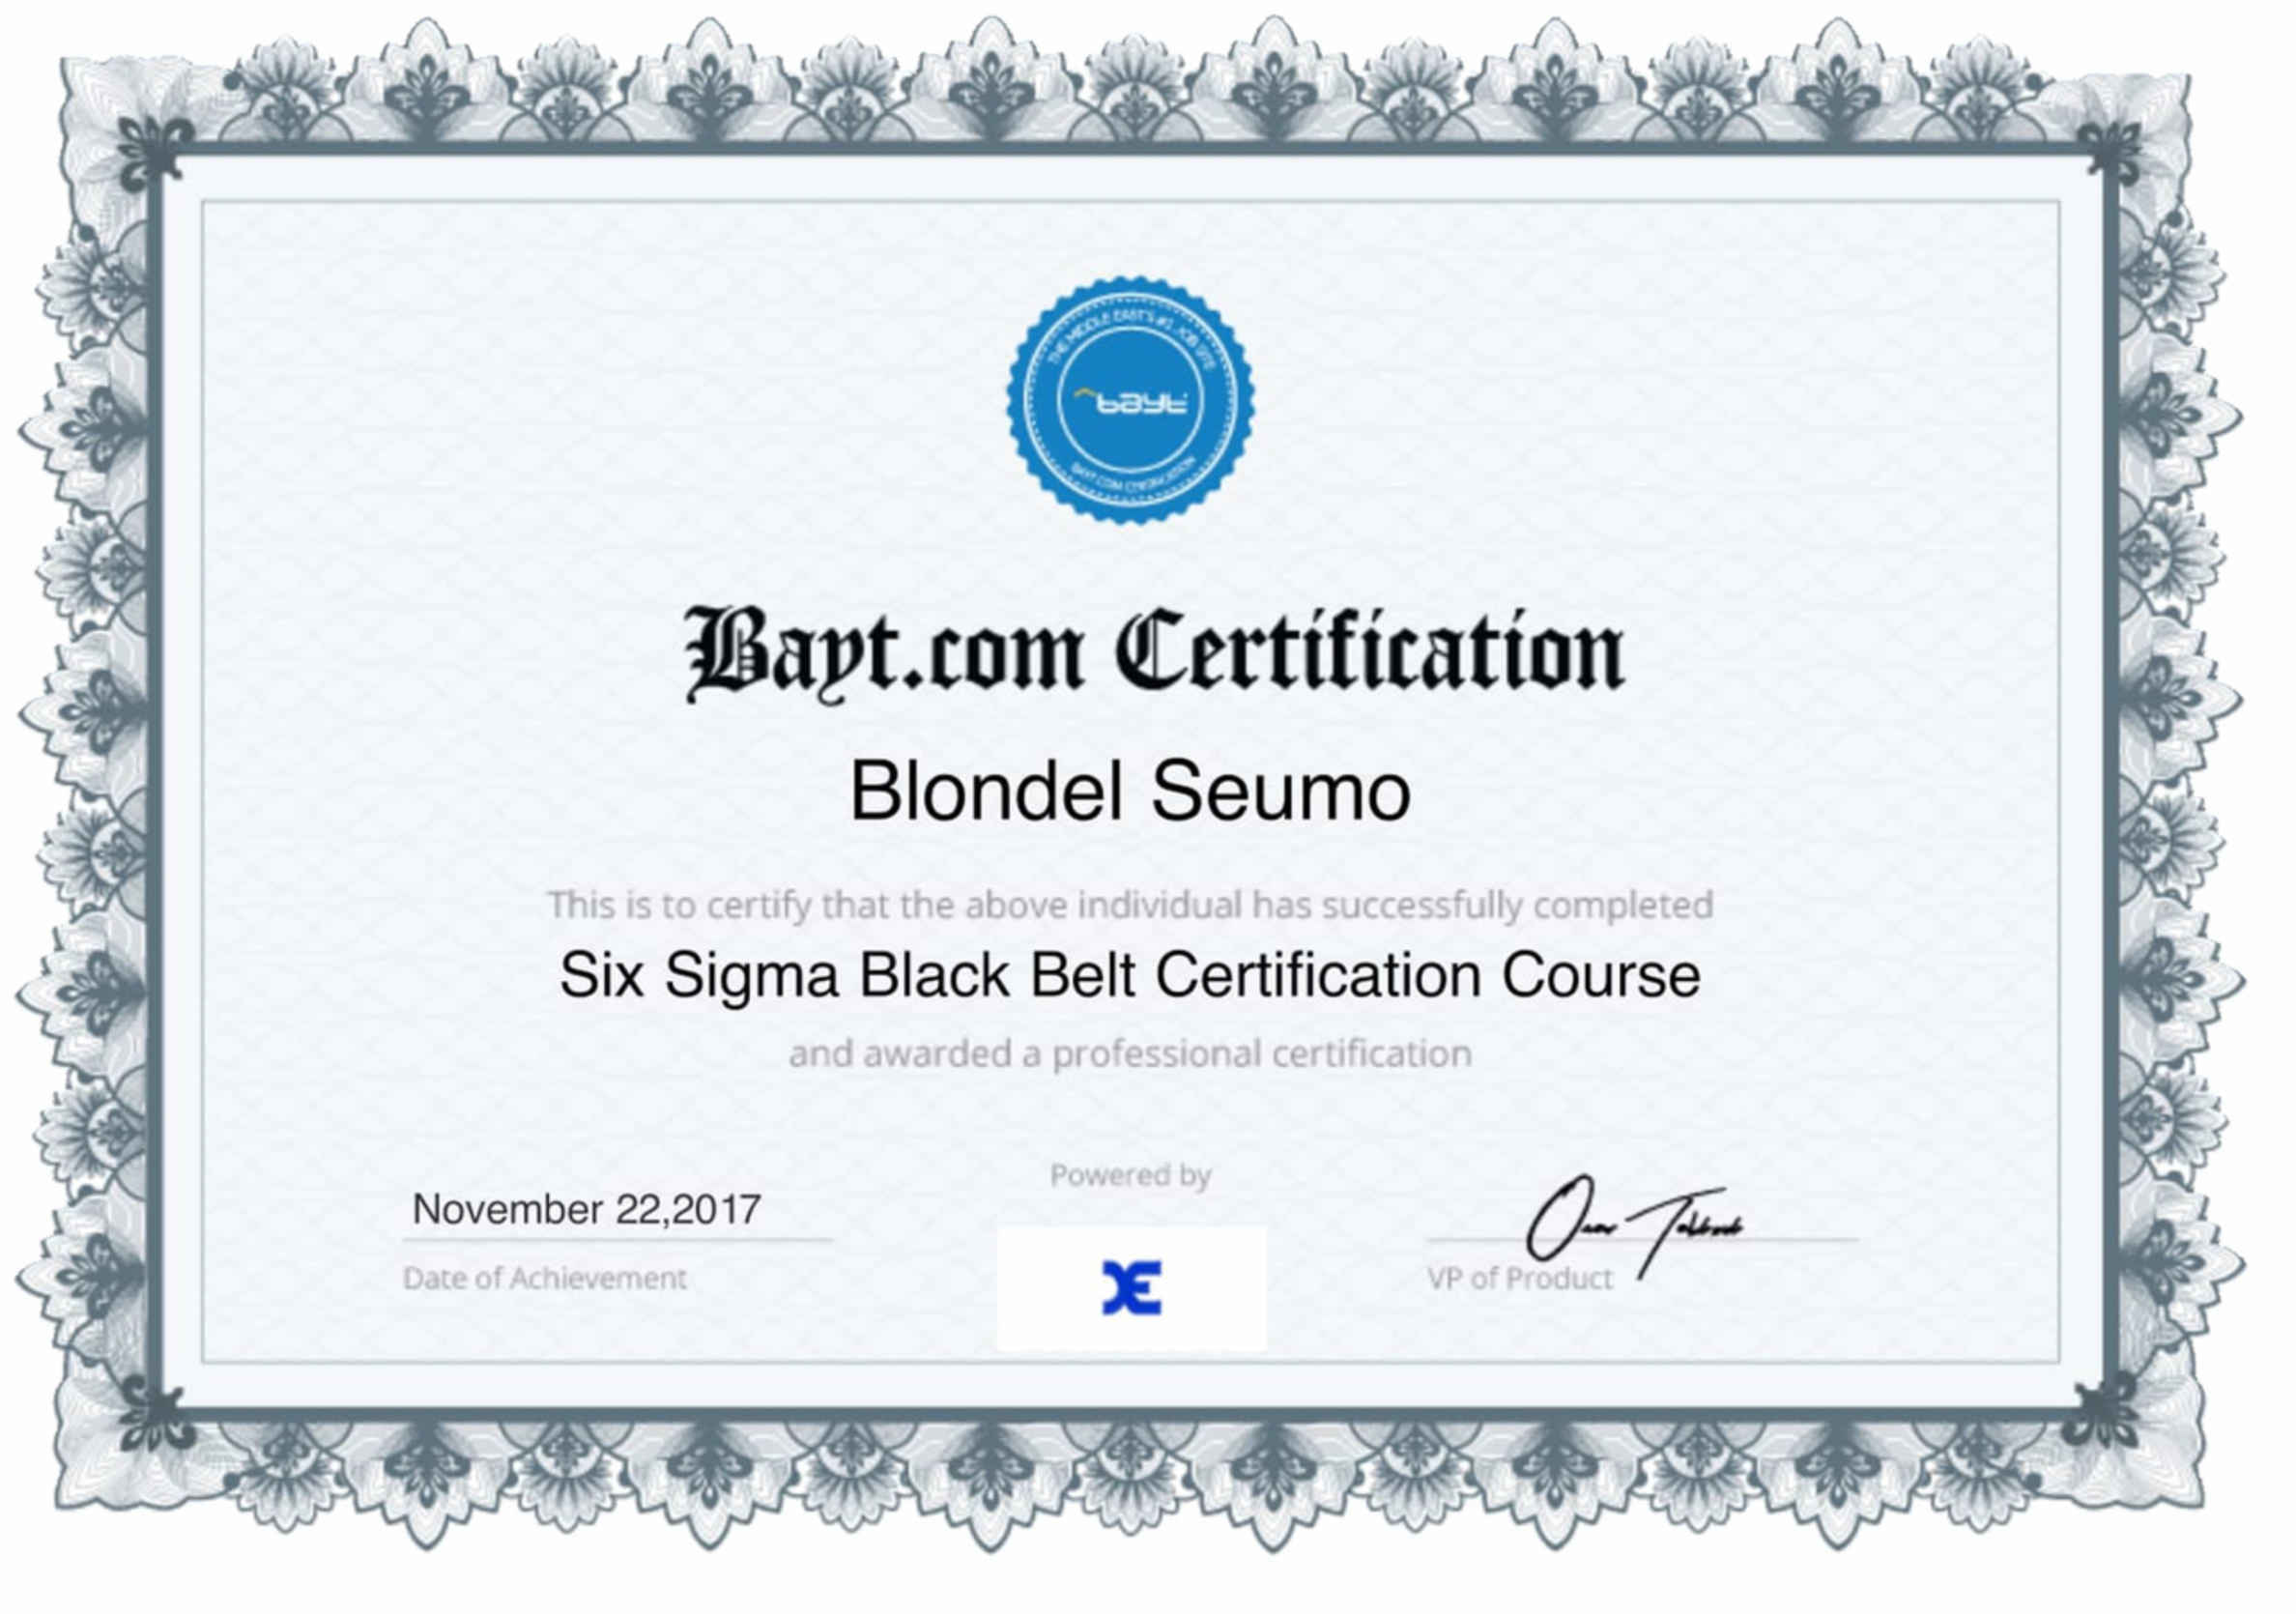 Council for six sigma certification wiring diagram for hunter beautiful image of lean six sigma black belt certification thumbnail 45296375 1511967990 85 compressed lean six xflitez Choice Image